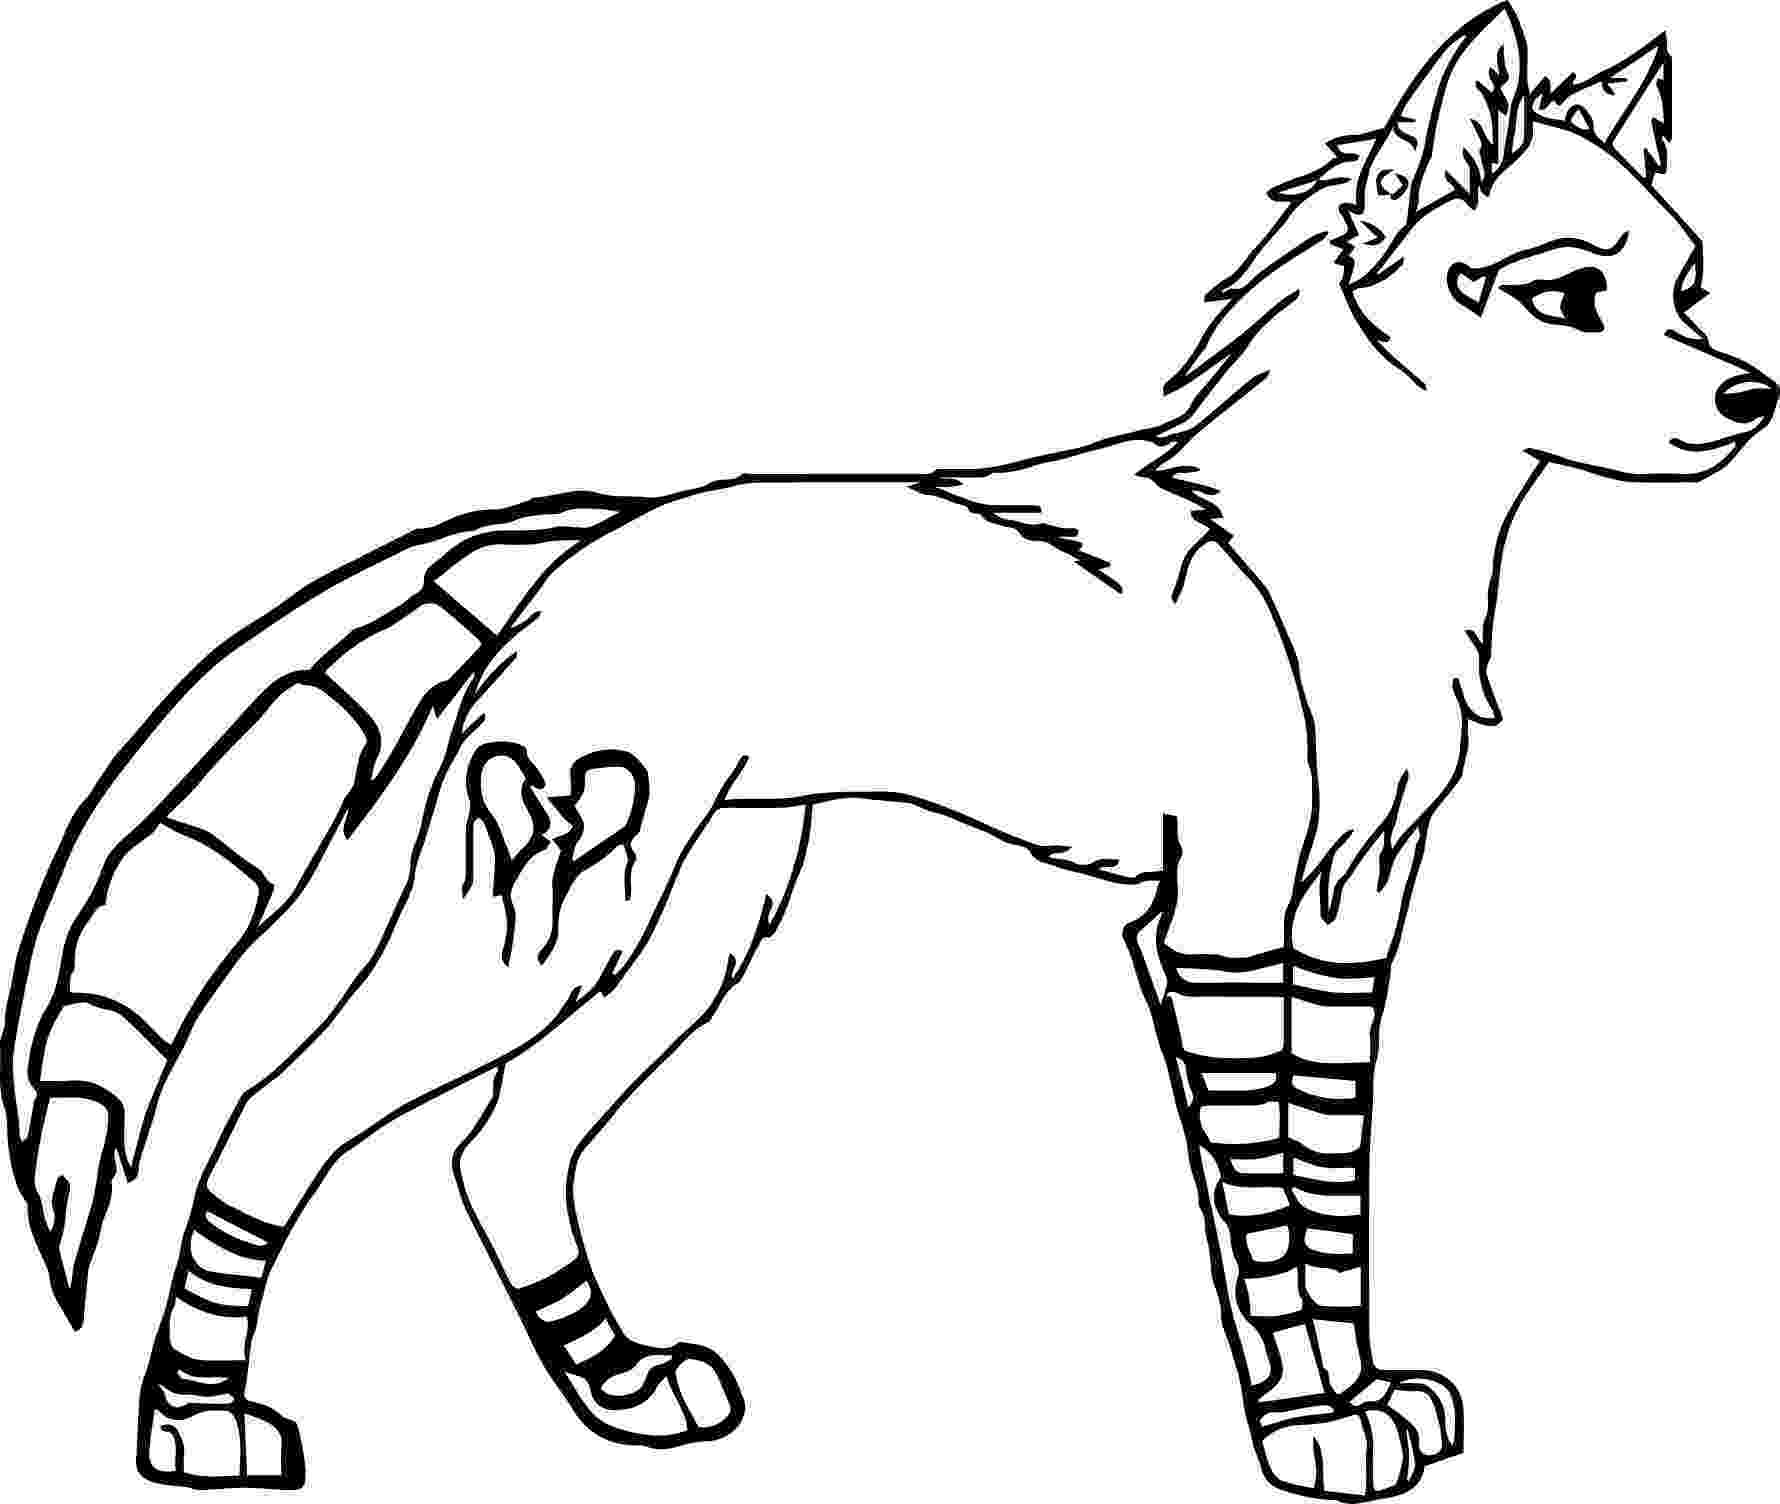 printable pictures of wolves free printable wolf coloring pages for kids printable wolves of pictures